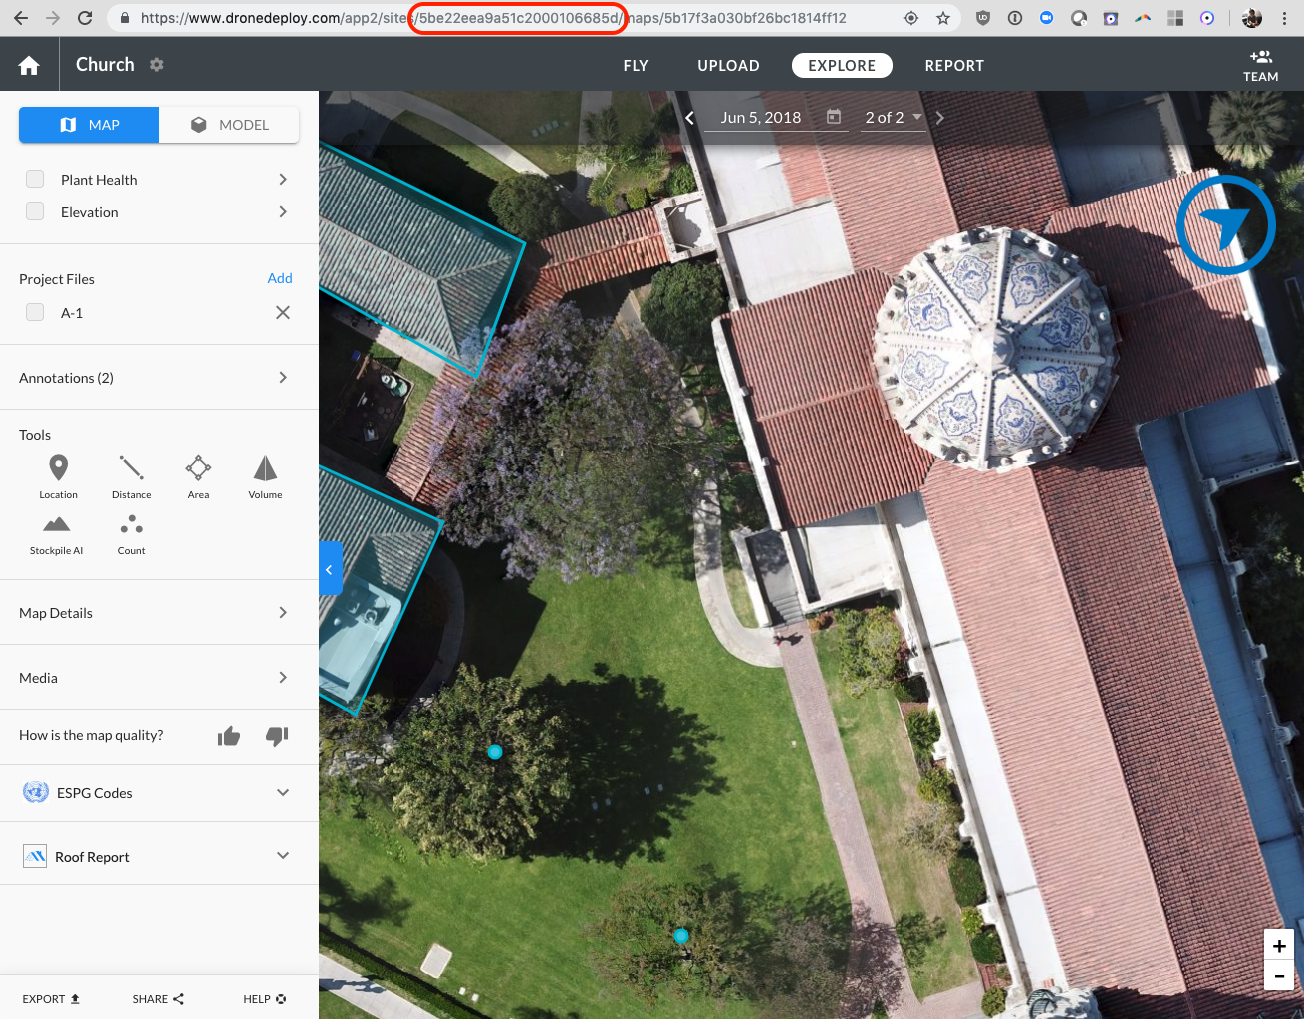 Locate your DroneDeploy project id